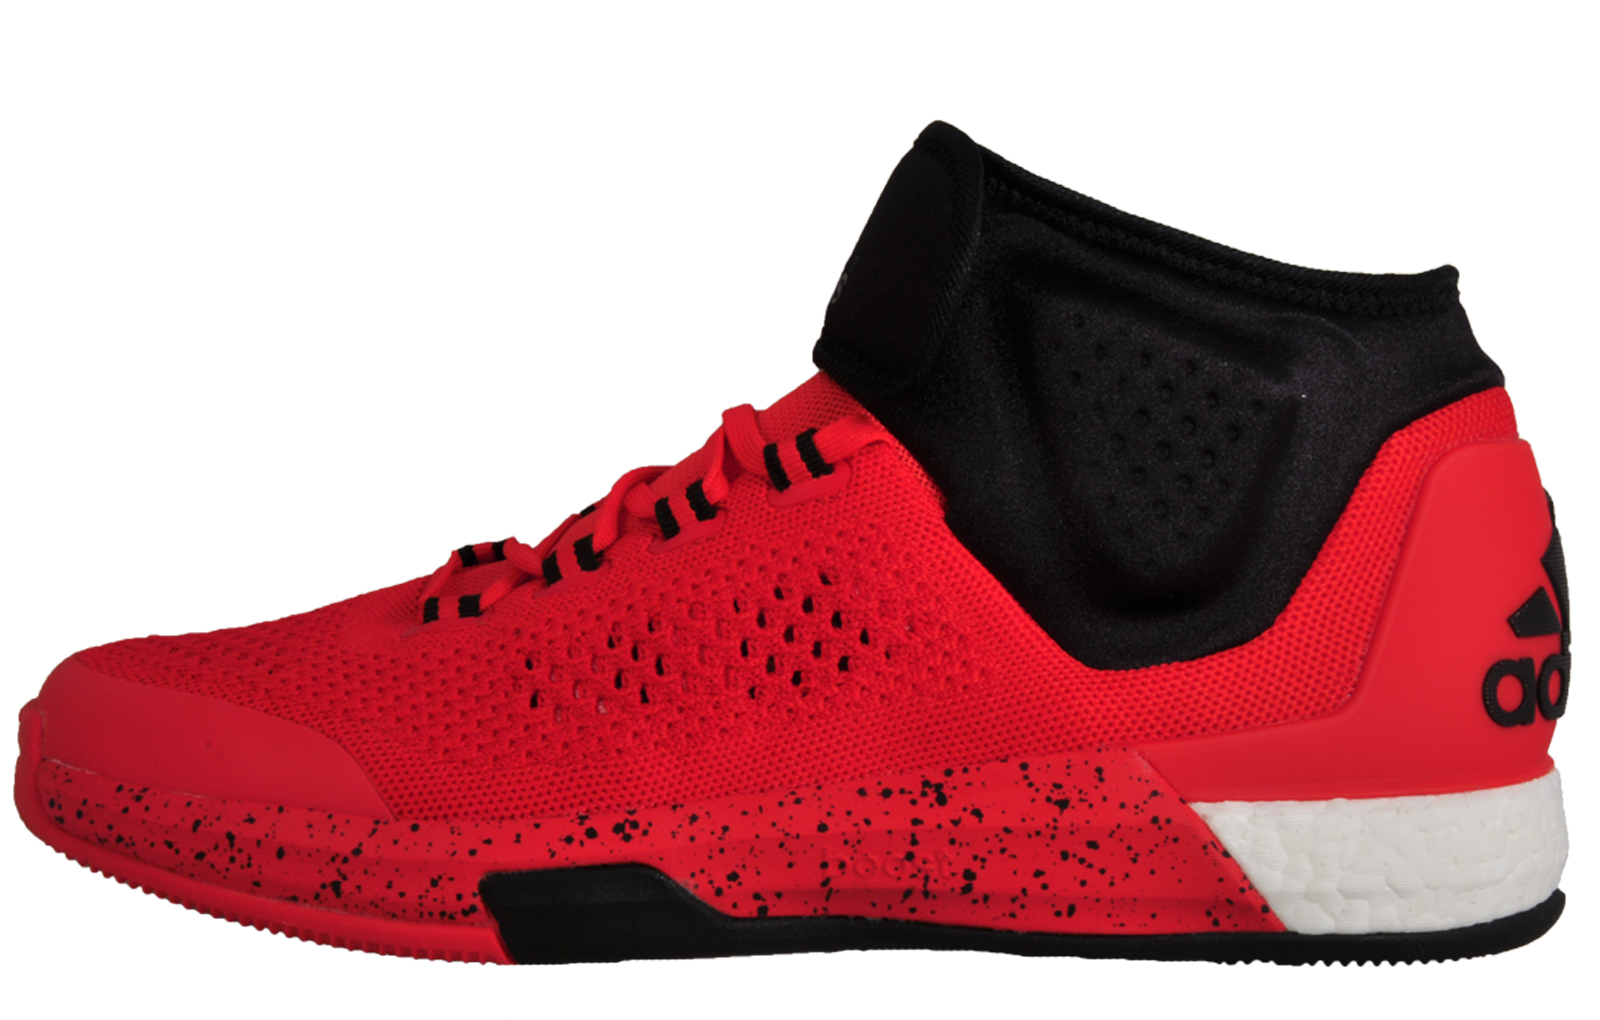 in stock 7e146 03474 Adidas Crazylight Boost Primeknit Premium Court Basketball Trainer Shoes Red